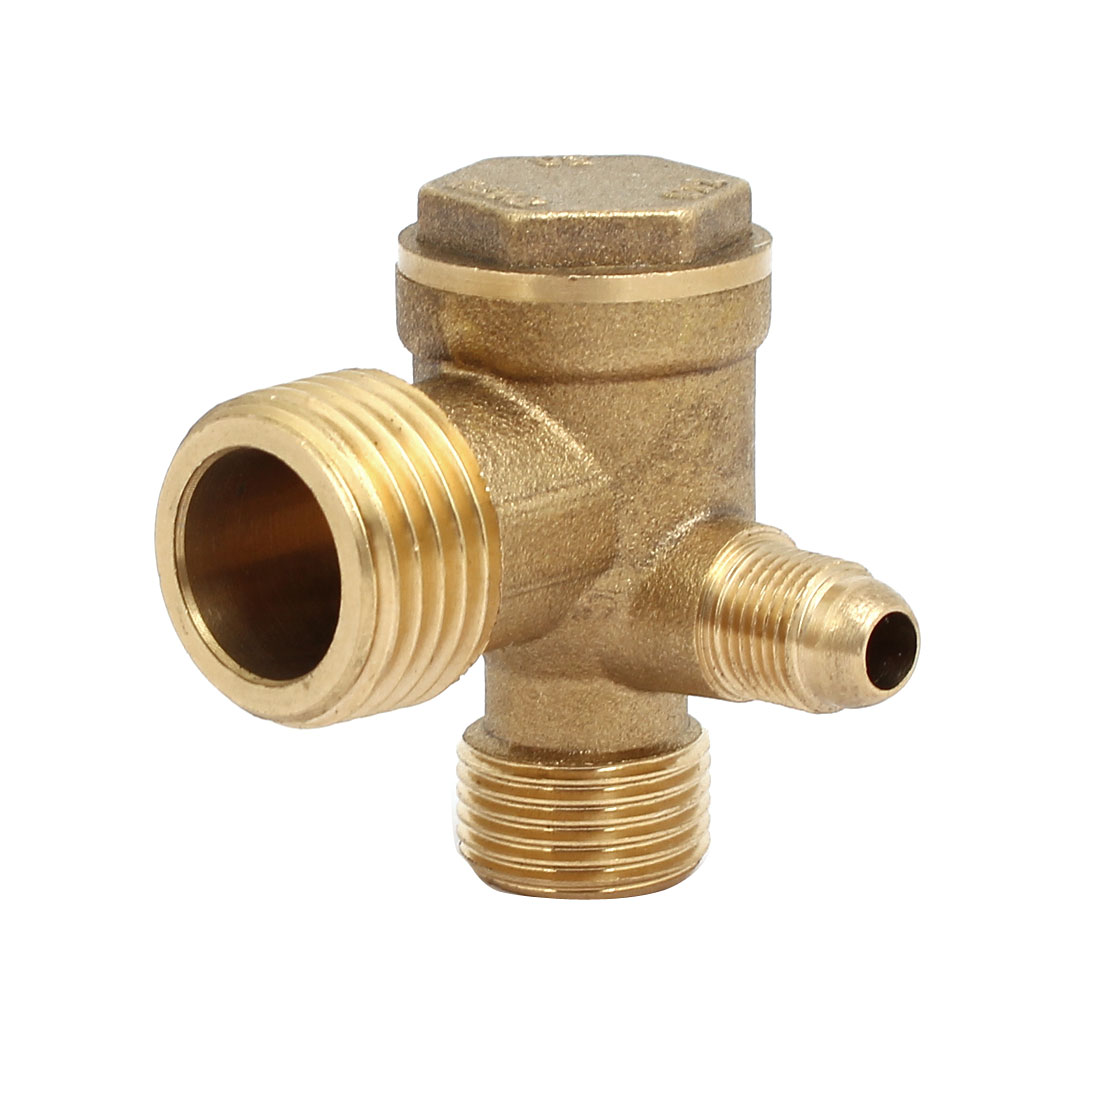 Unique Bargains 20mmx19mmx10mm Male Threaded Brass Air Gas Compressor Check Valve Gold Tone - image 1 of 2